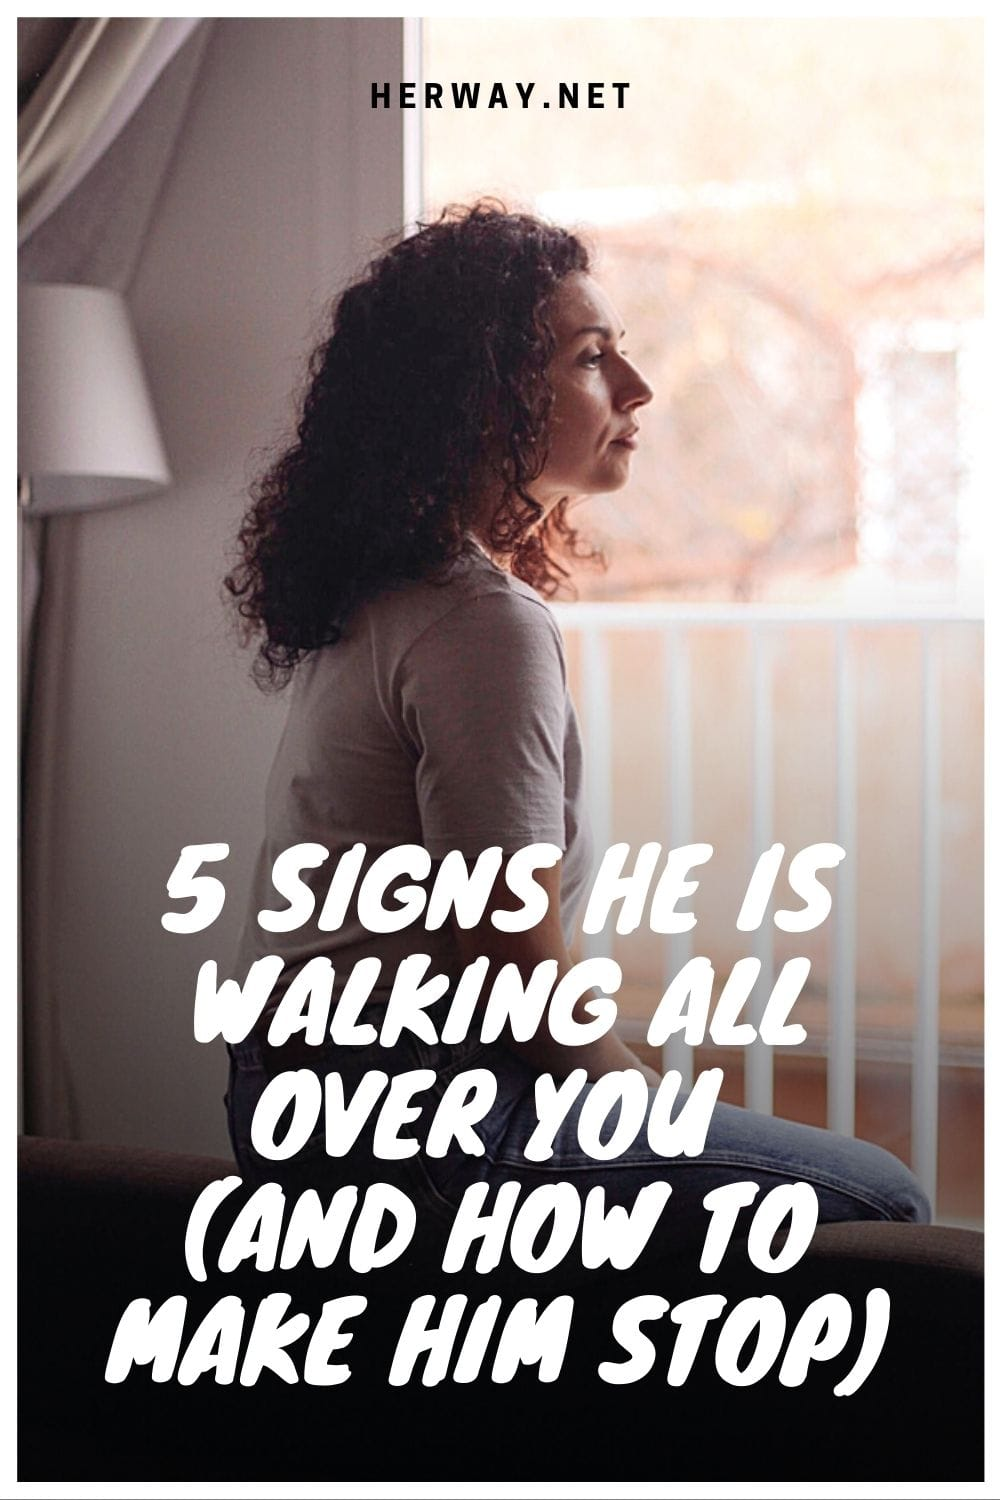 5 Signs He Is Walking All Over You (And How To Make Him Stop)